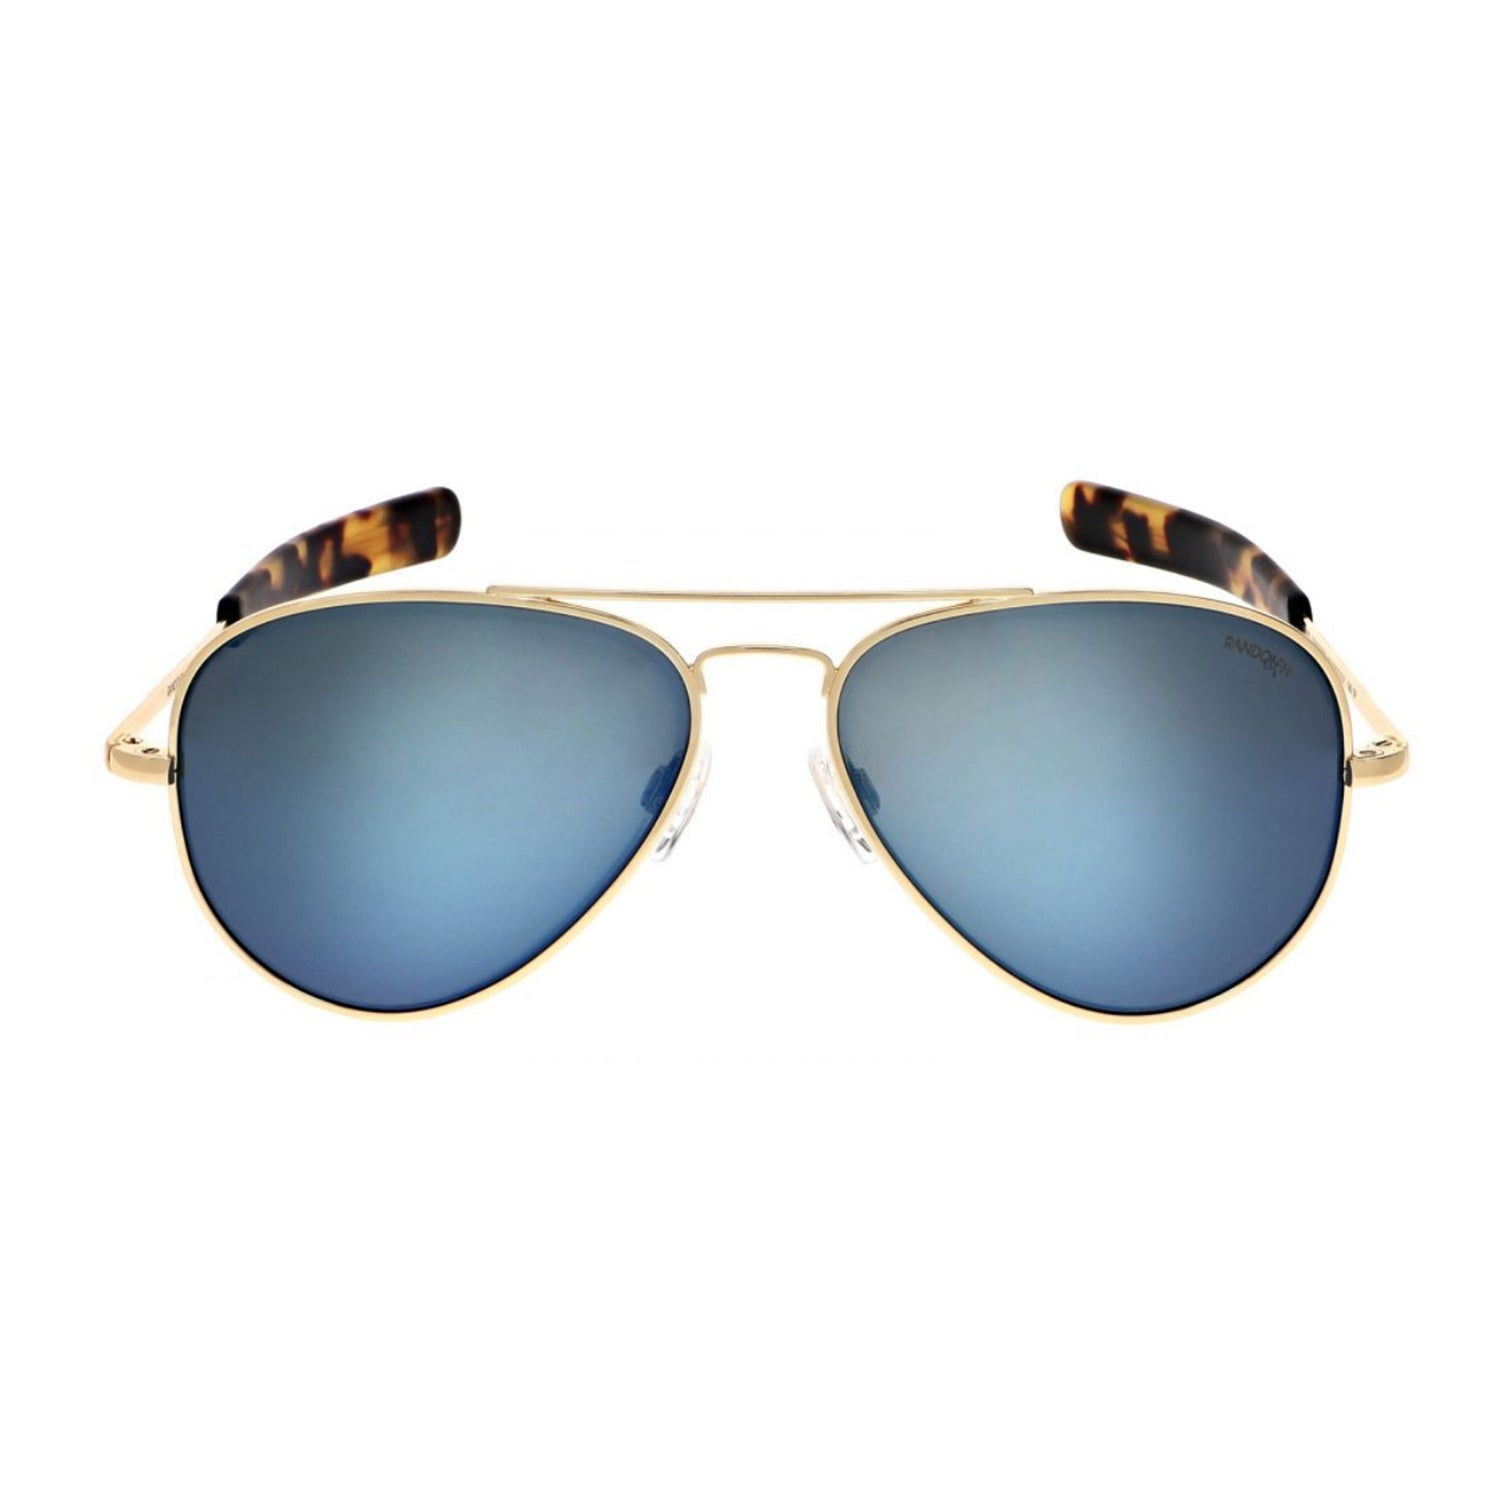 Concorde Aviators, 23k Gold Frames with Cobalt Lenses by Randolph - Talisman Collection Fine Jewelers